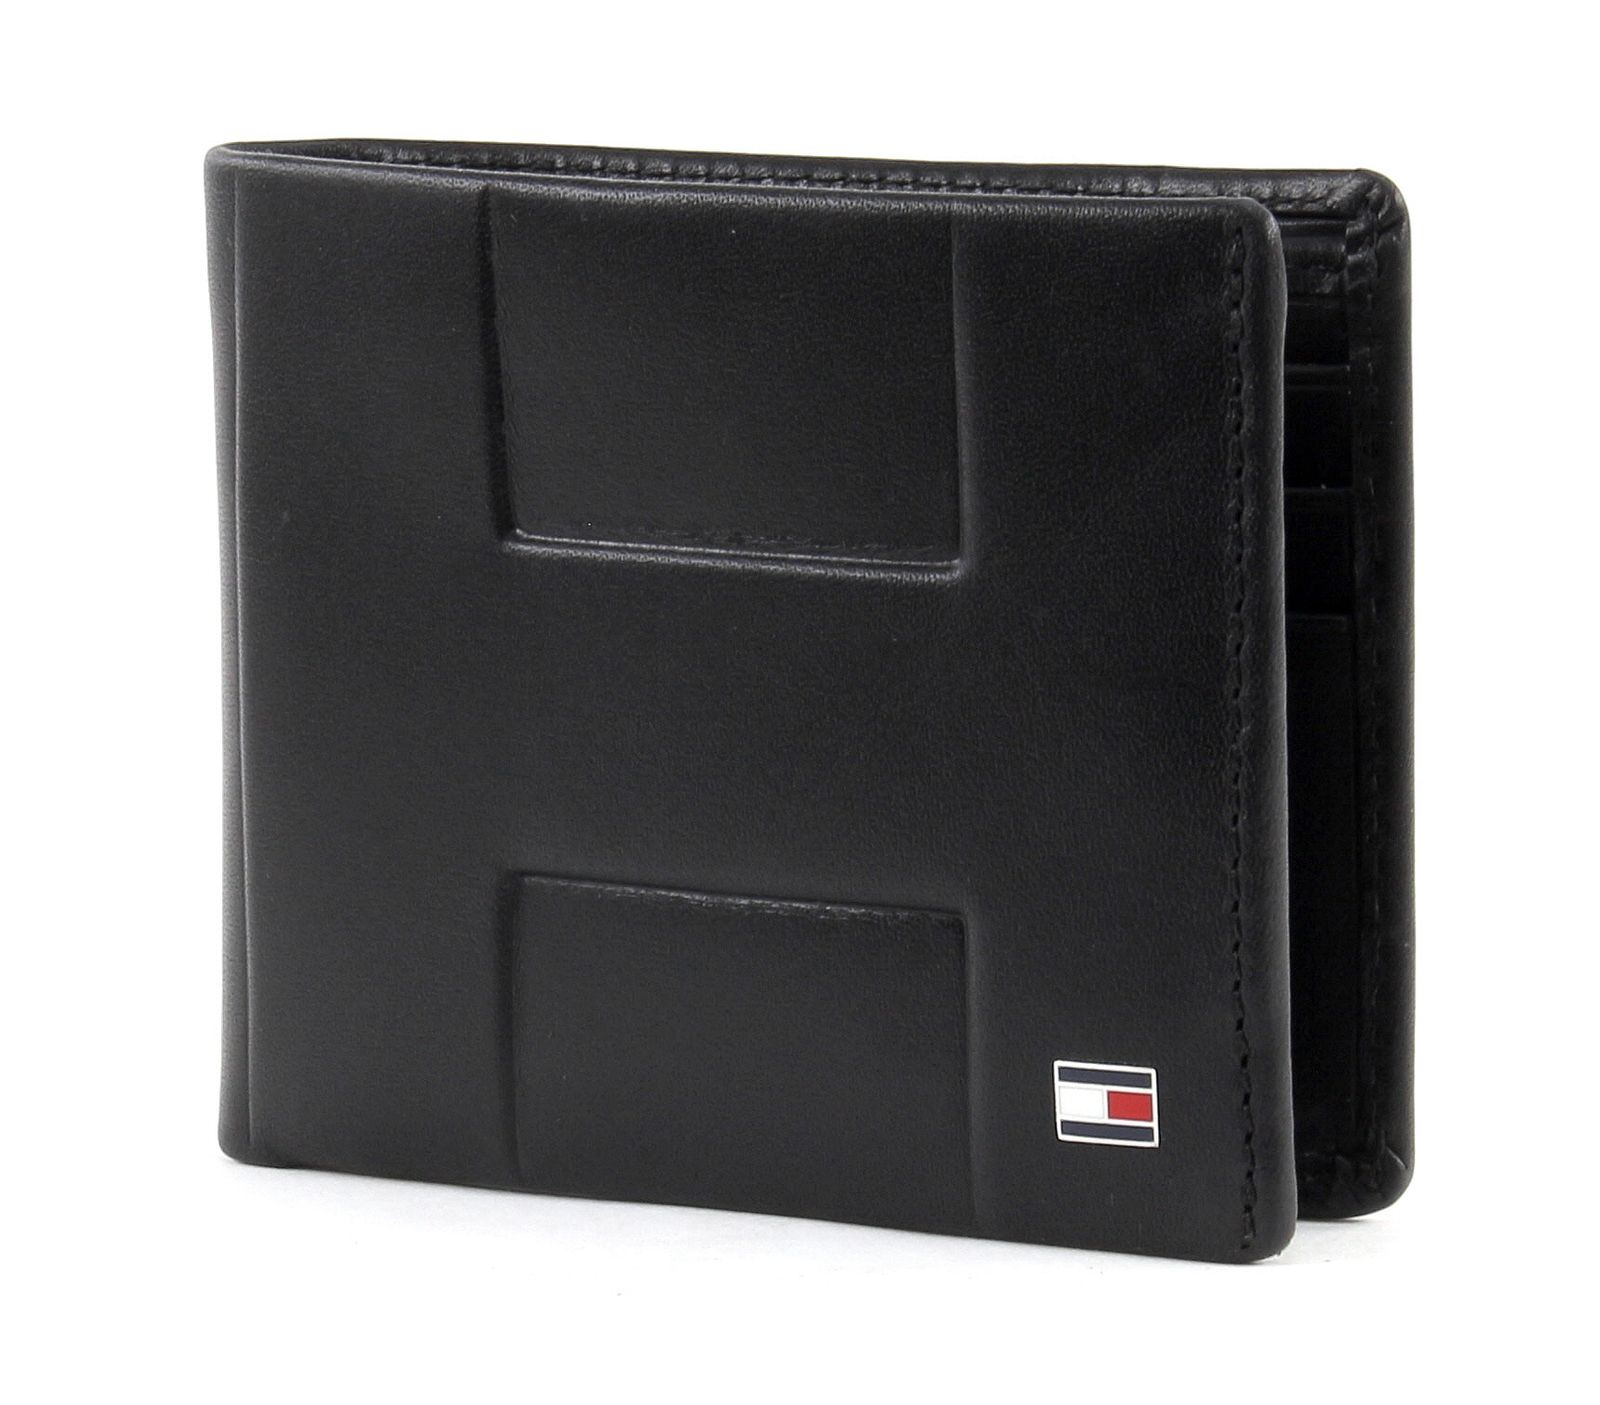 tommy hilfiger th emboss mini cc wallet geldb rse portemonnaie schwarz leder ebay. Black Bedroom Furniture Sets. Home Design Ideas